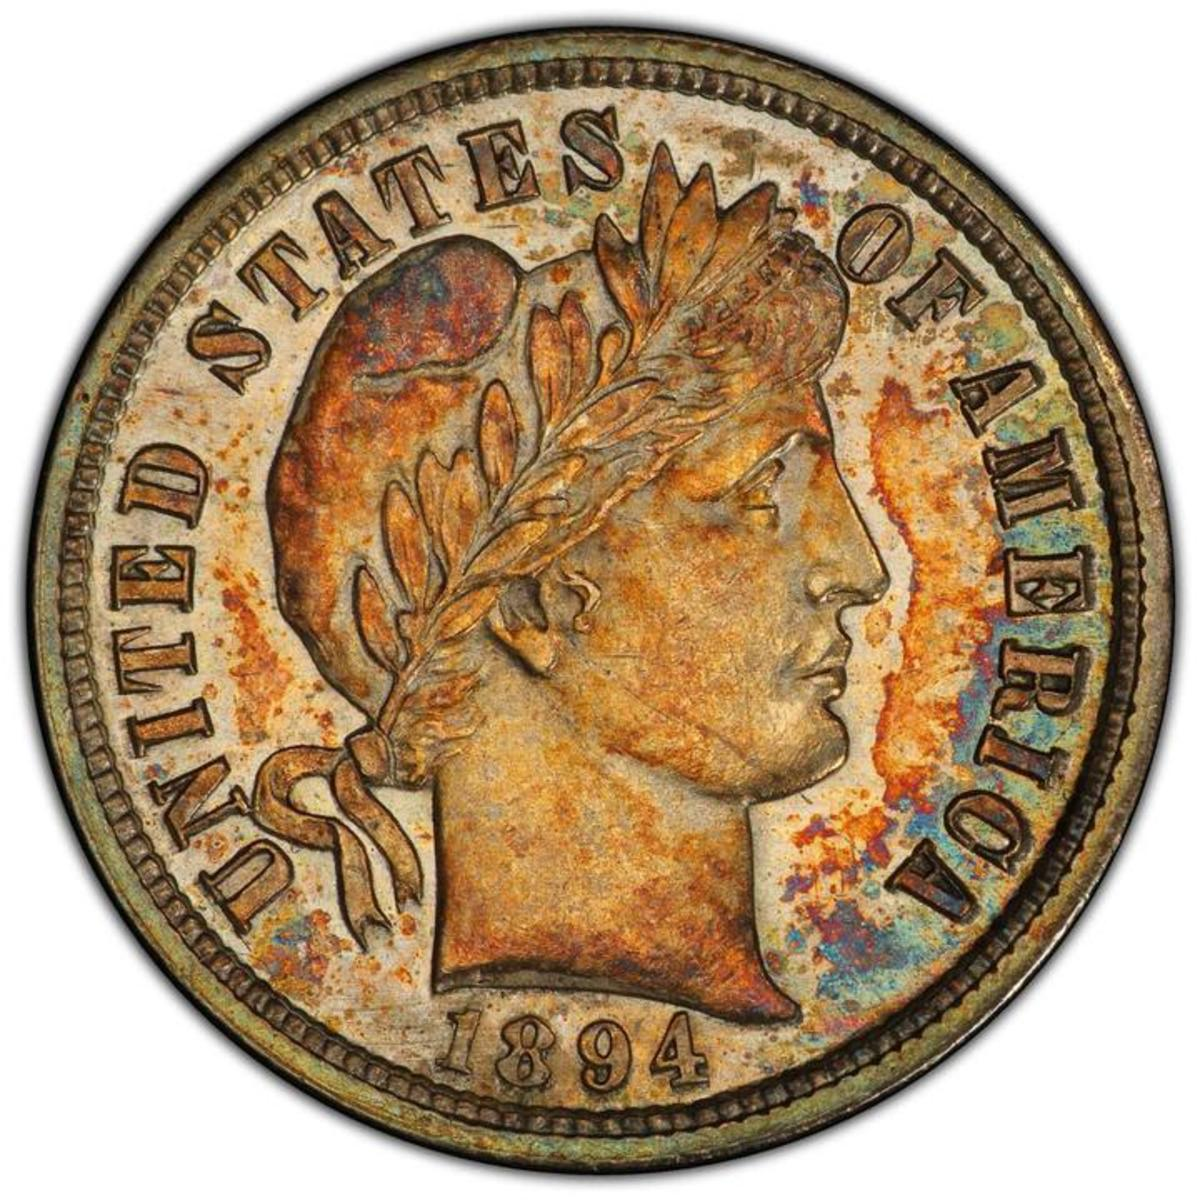 The Legendary 1894-S Barber dime is one of just 24 coins struck. Only nine examples are currently known.